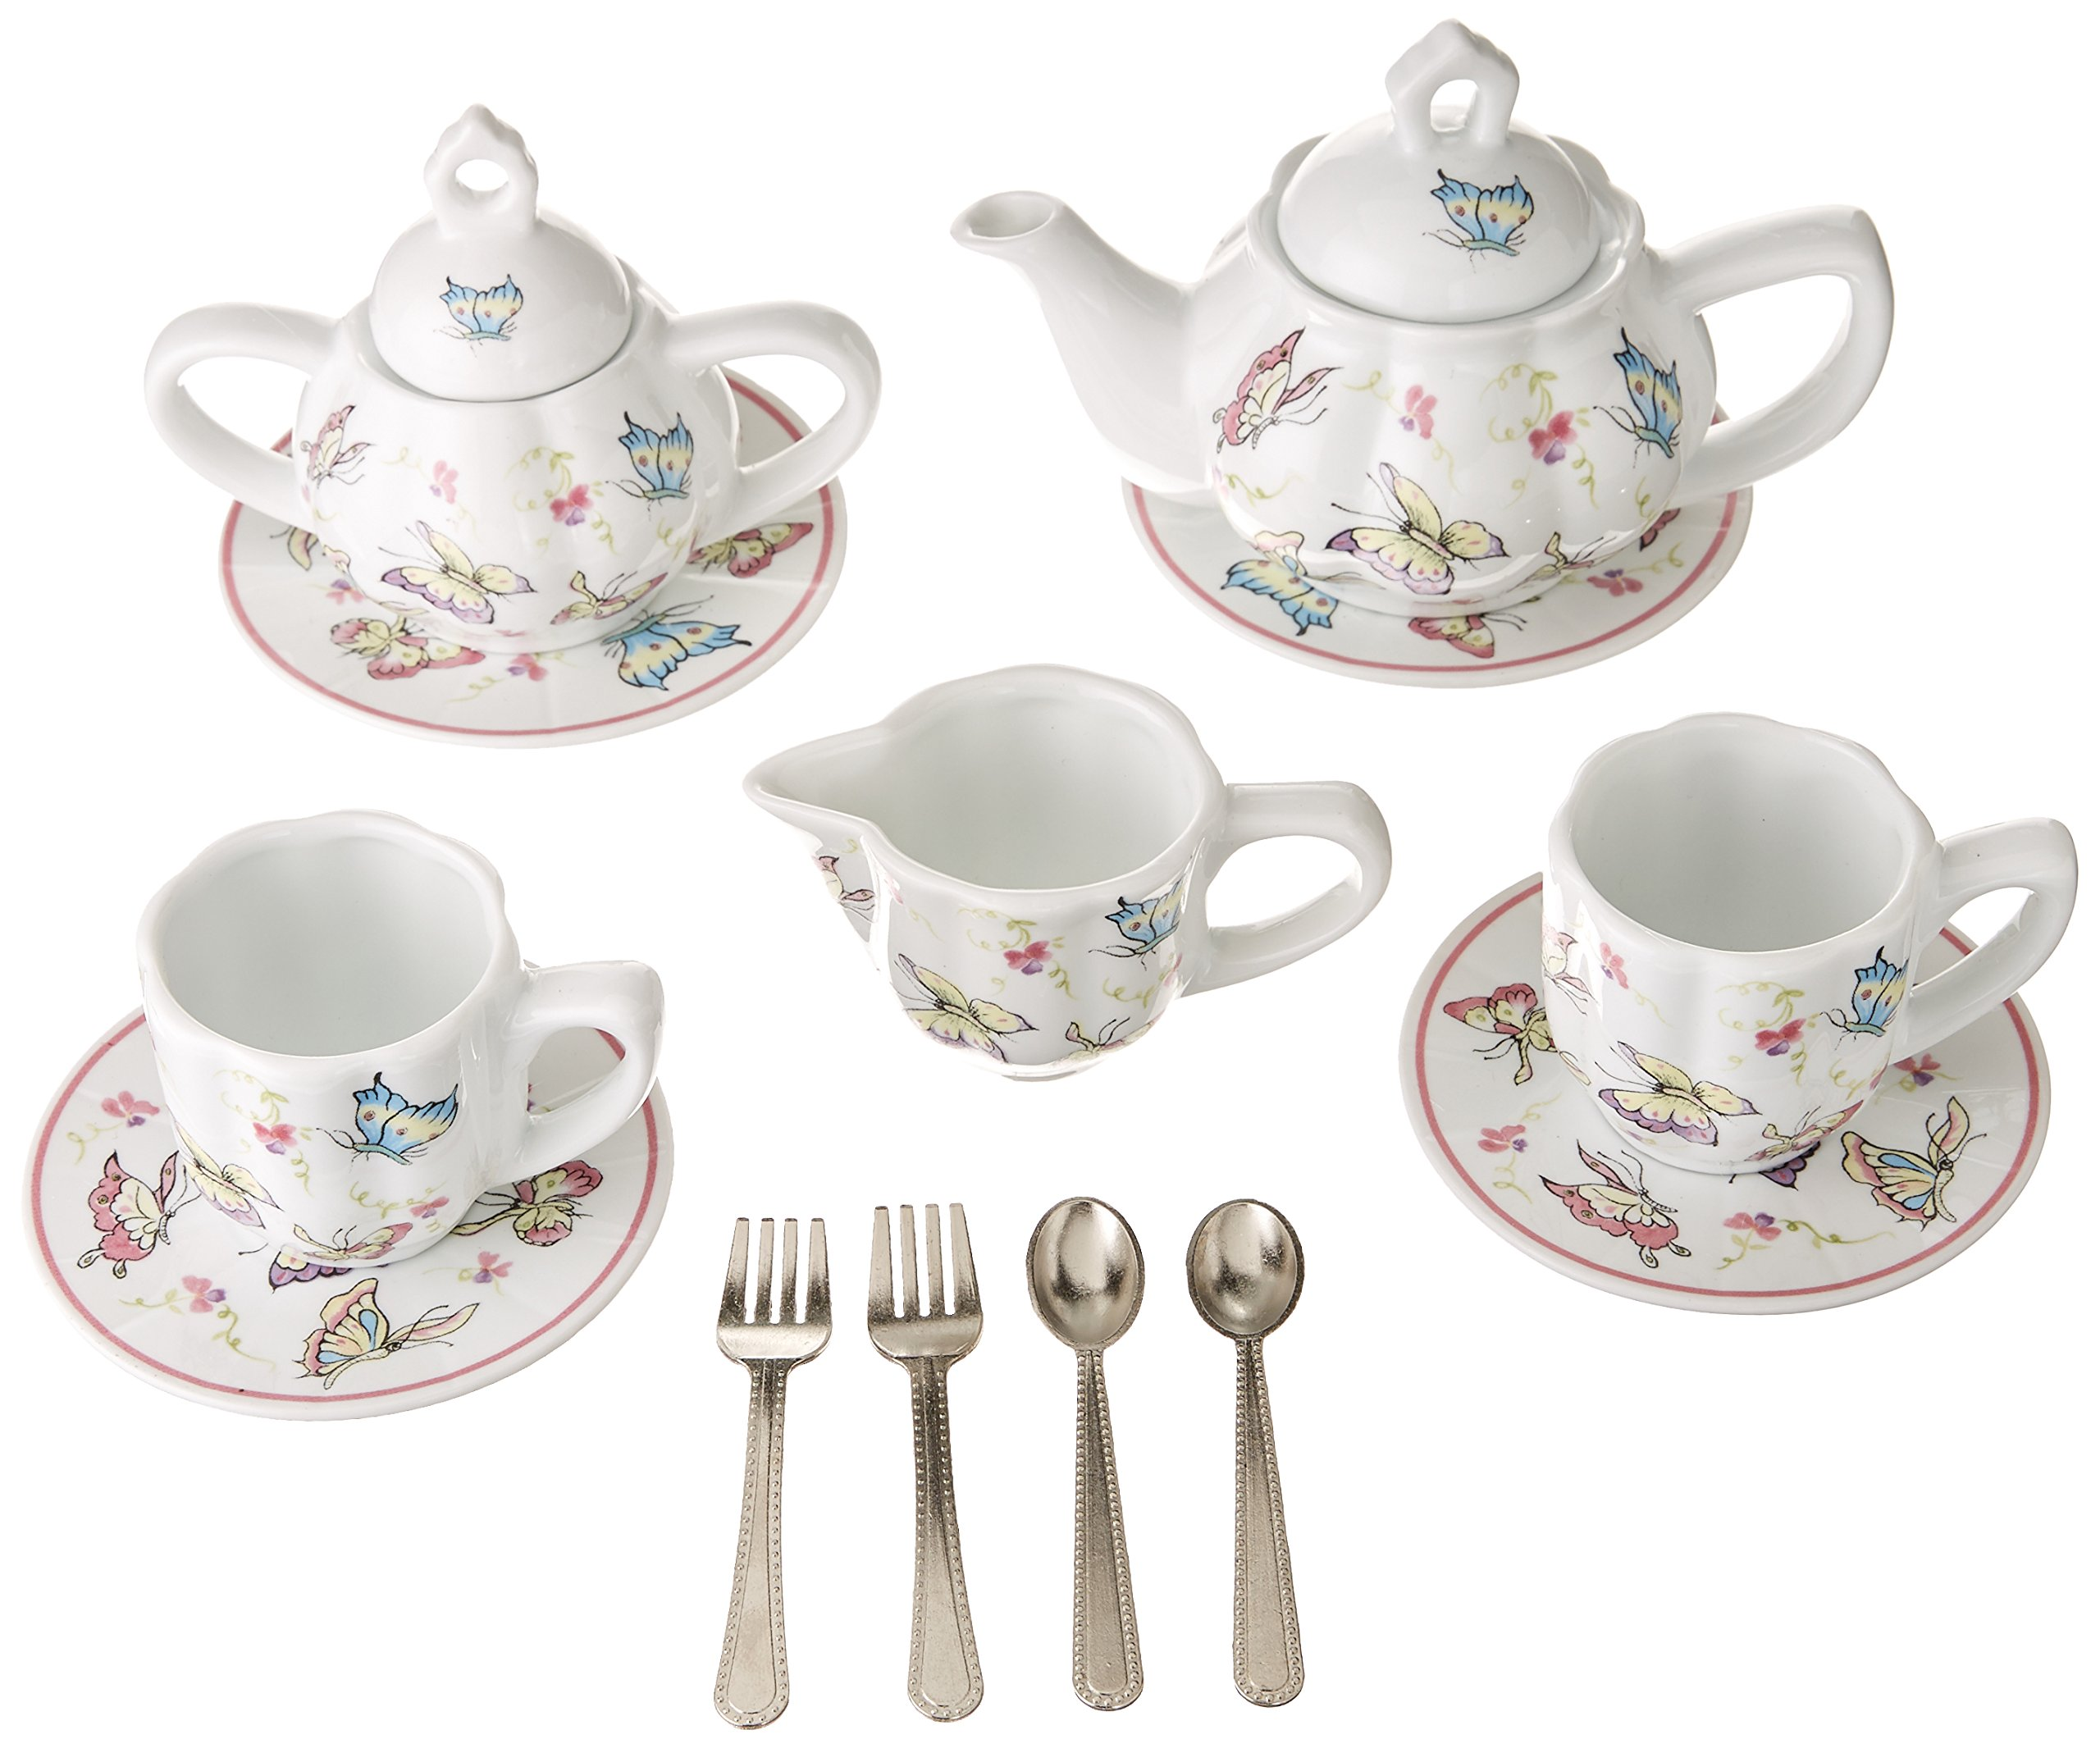 Delton Products Pink Butterfly Children's Tea Set with Basket by Delton Products (Image #2)